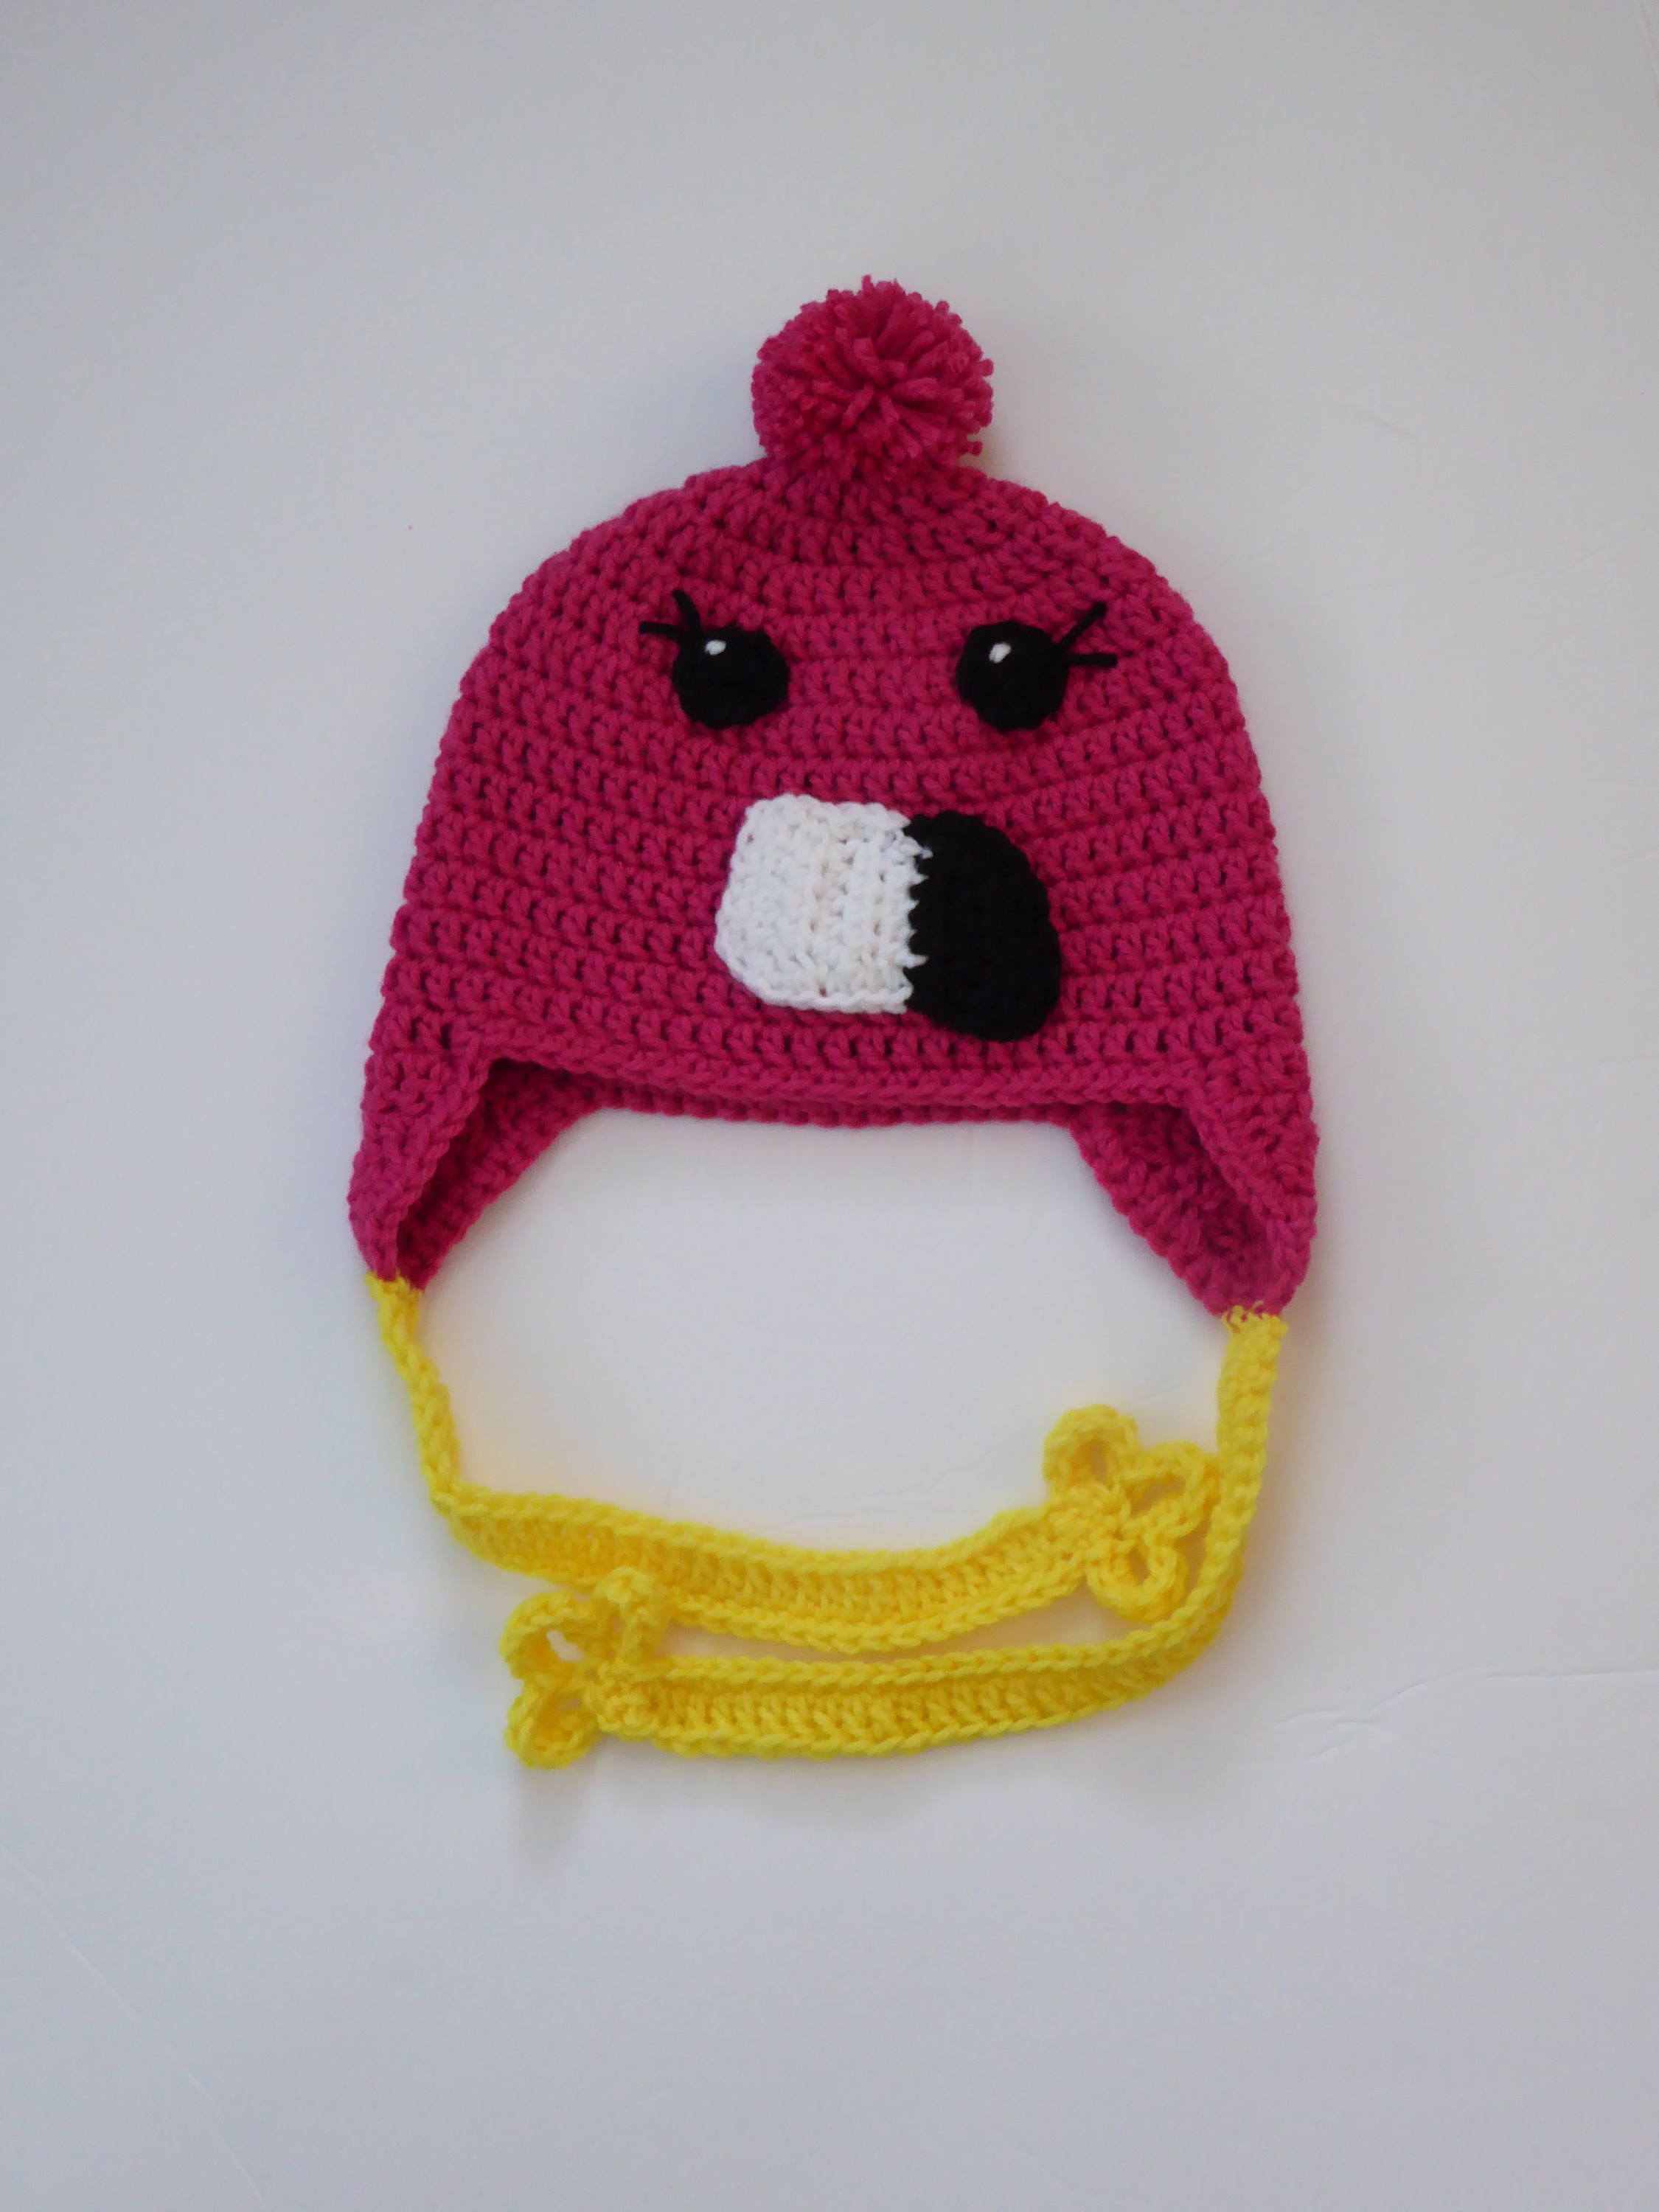 12aed6c20b7 Pink flamingo crochet earflap hat - cute kid s winter hat